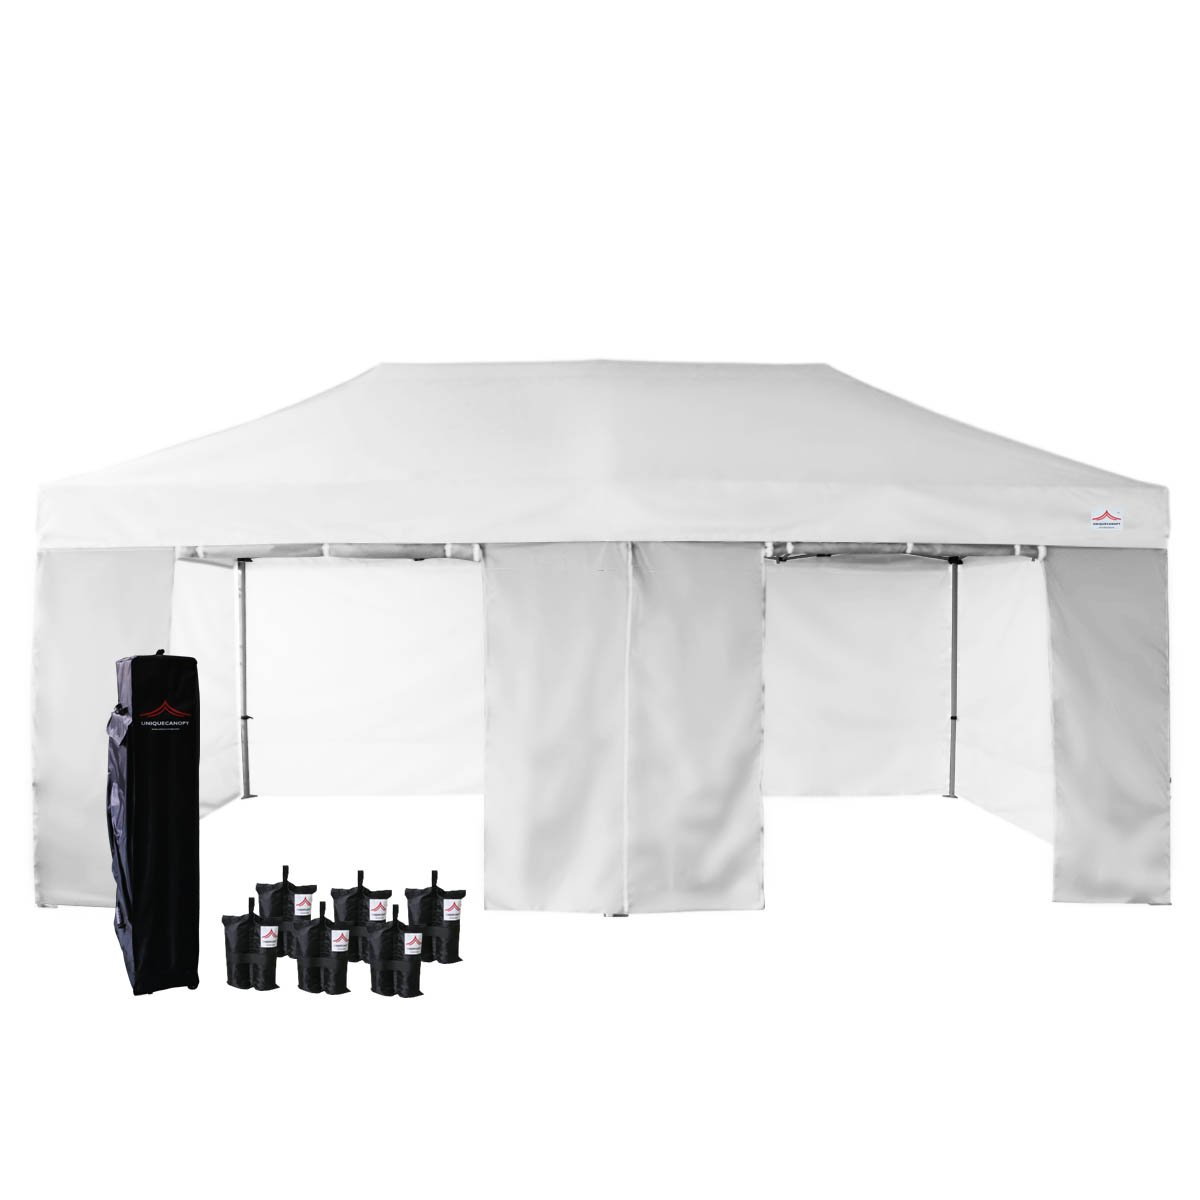 UNIQUECANOPY 10 x20 Ez Pop Up Canopy Tent Commercial Instant Shelter, with 4 Removable Zippered Side Walls and Heavy Duty Roller Bag, 6 Sand Bags White